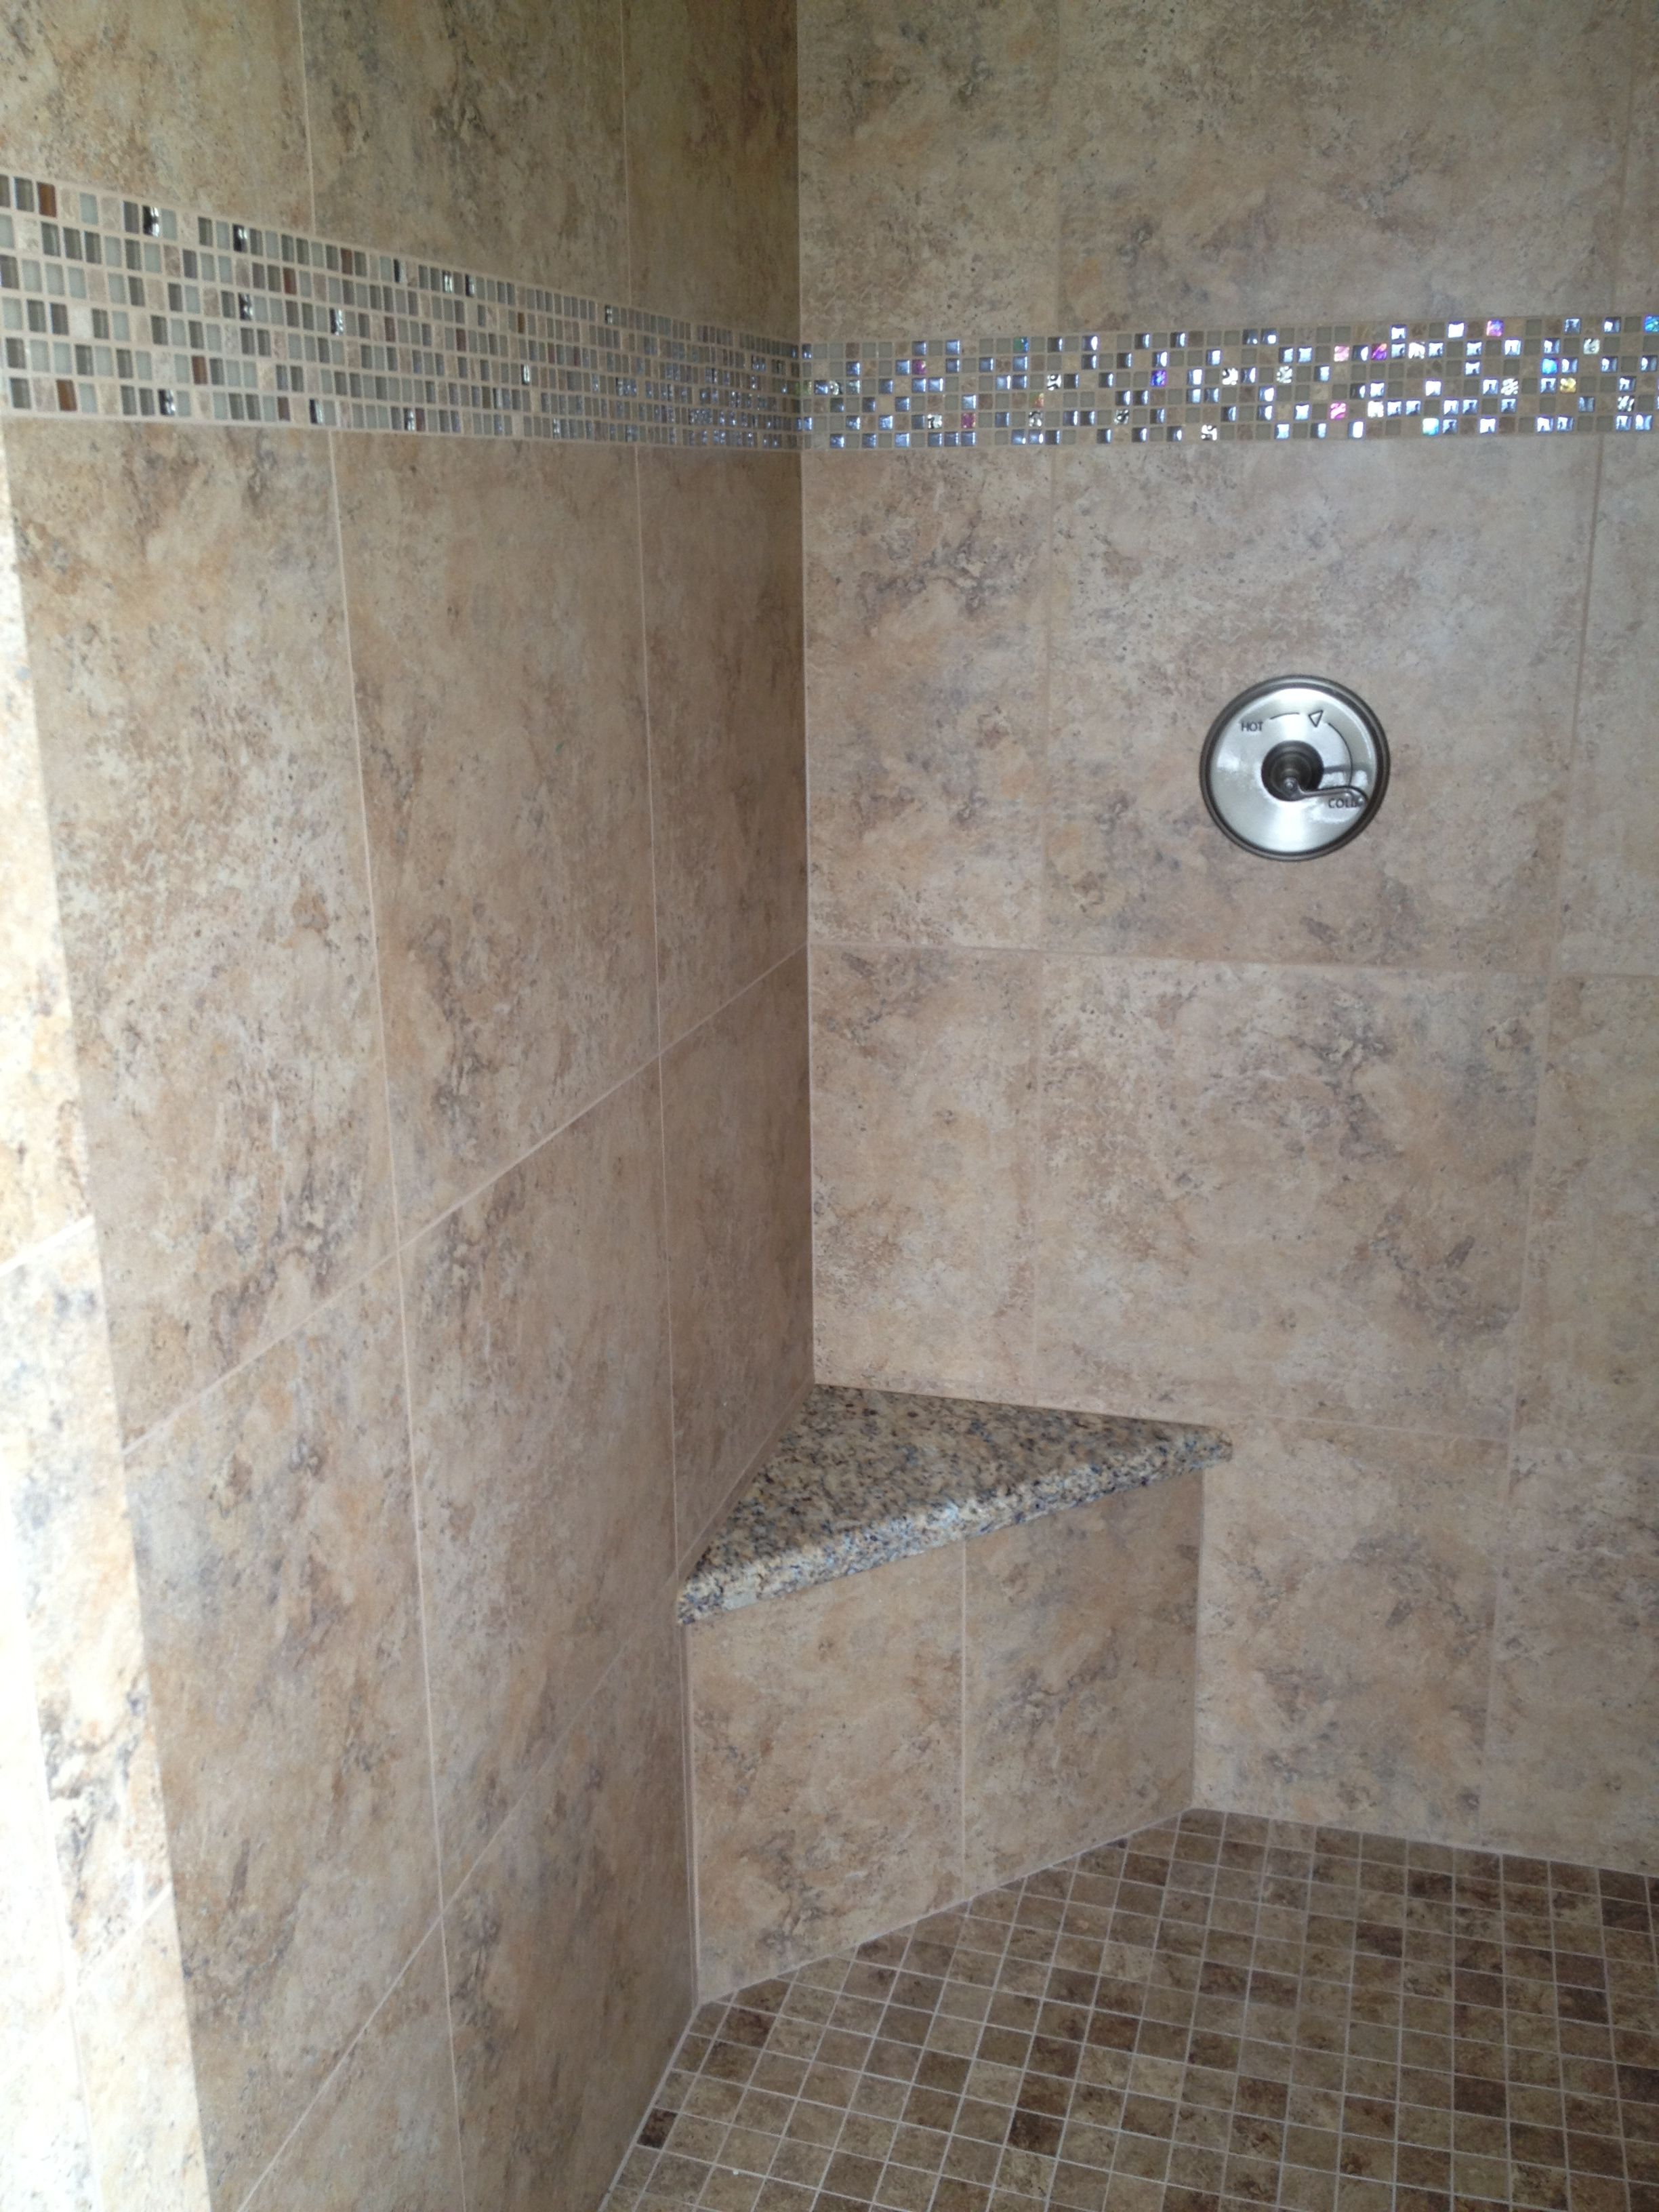 7x7 Porcelain tile installed in a master shower using Juparana